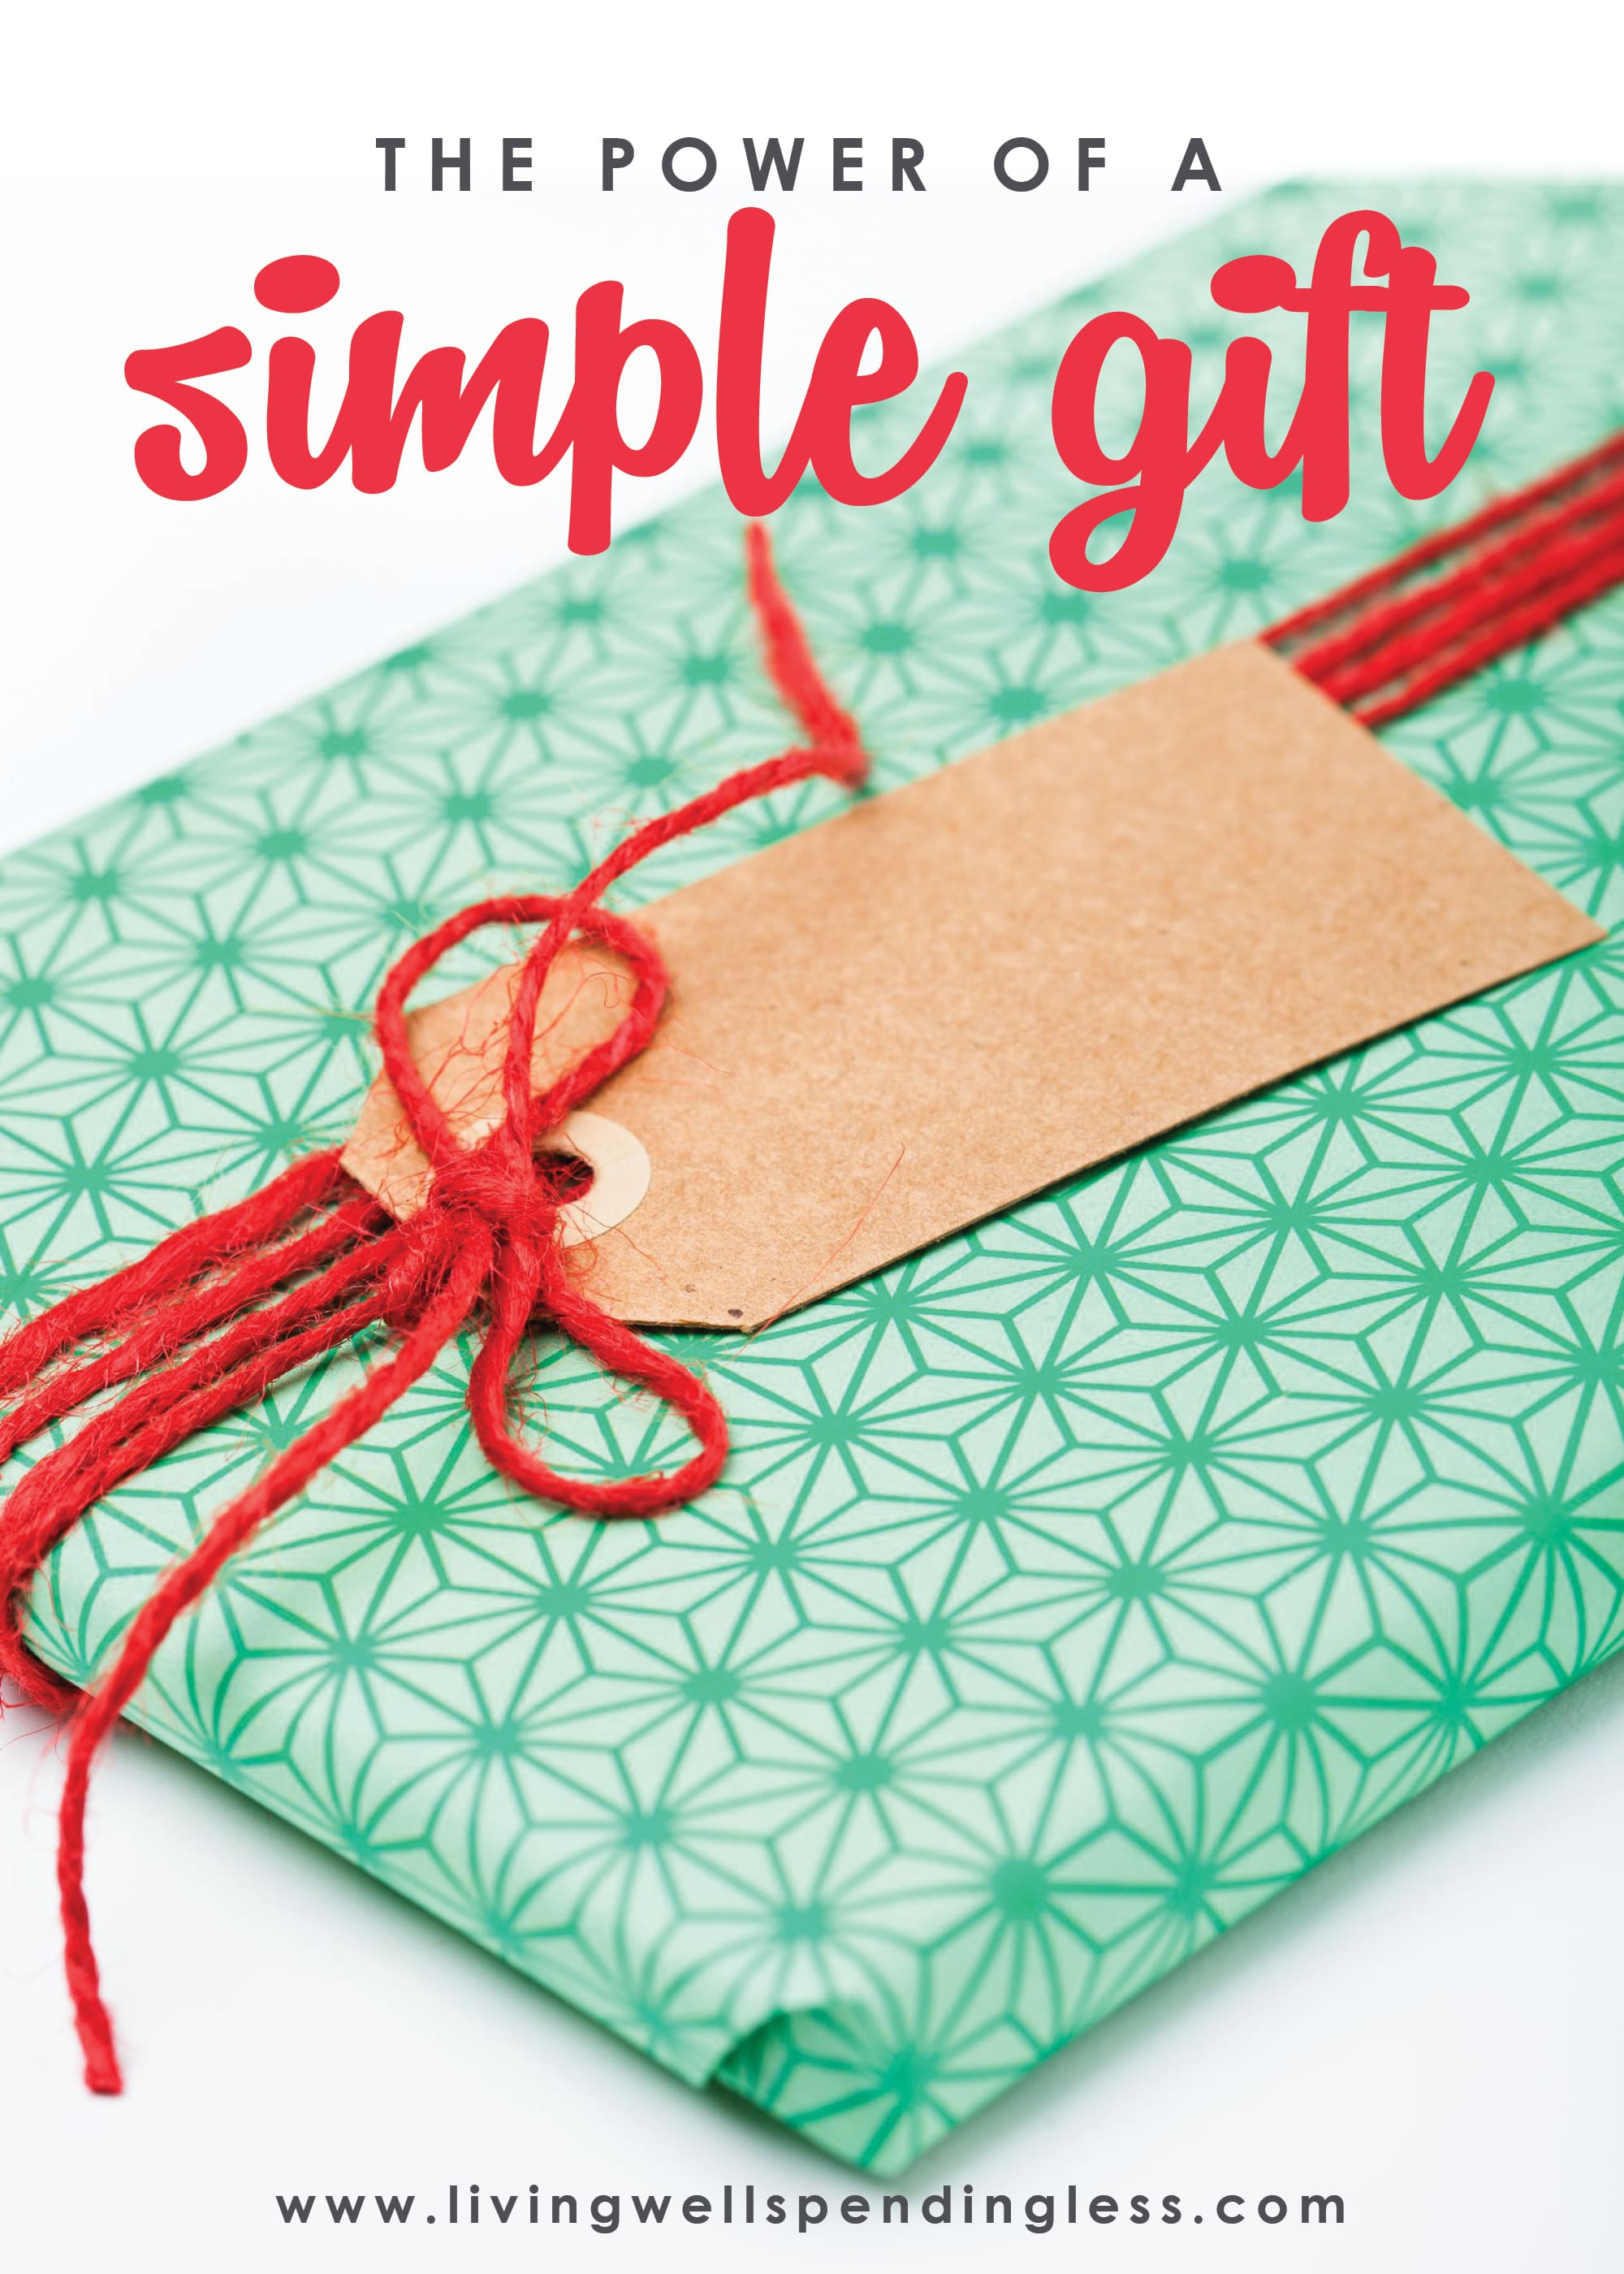 There is power in giving simple gifts.